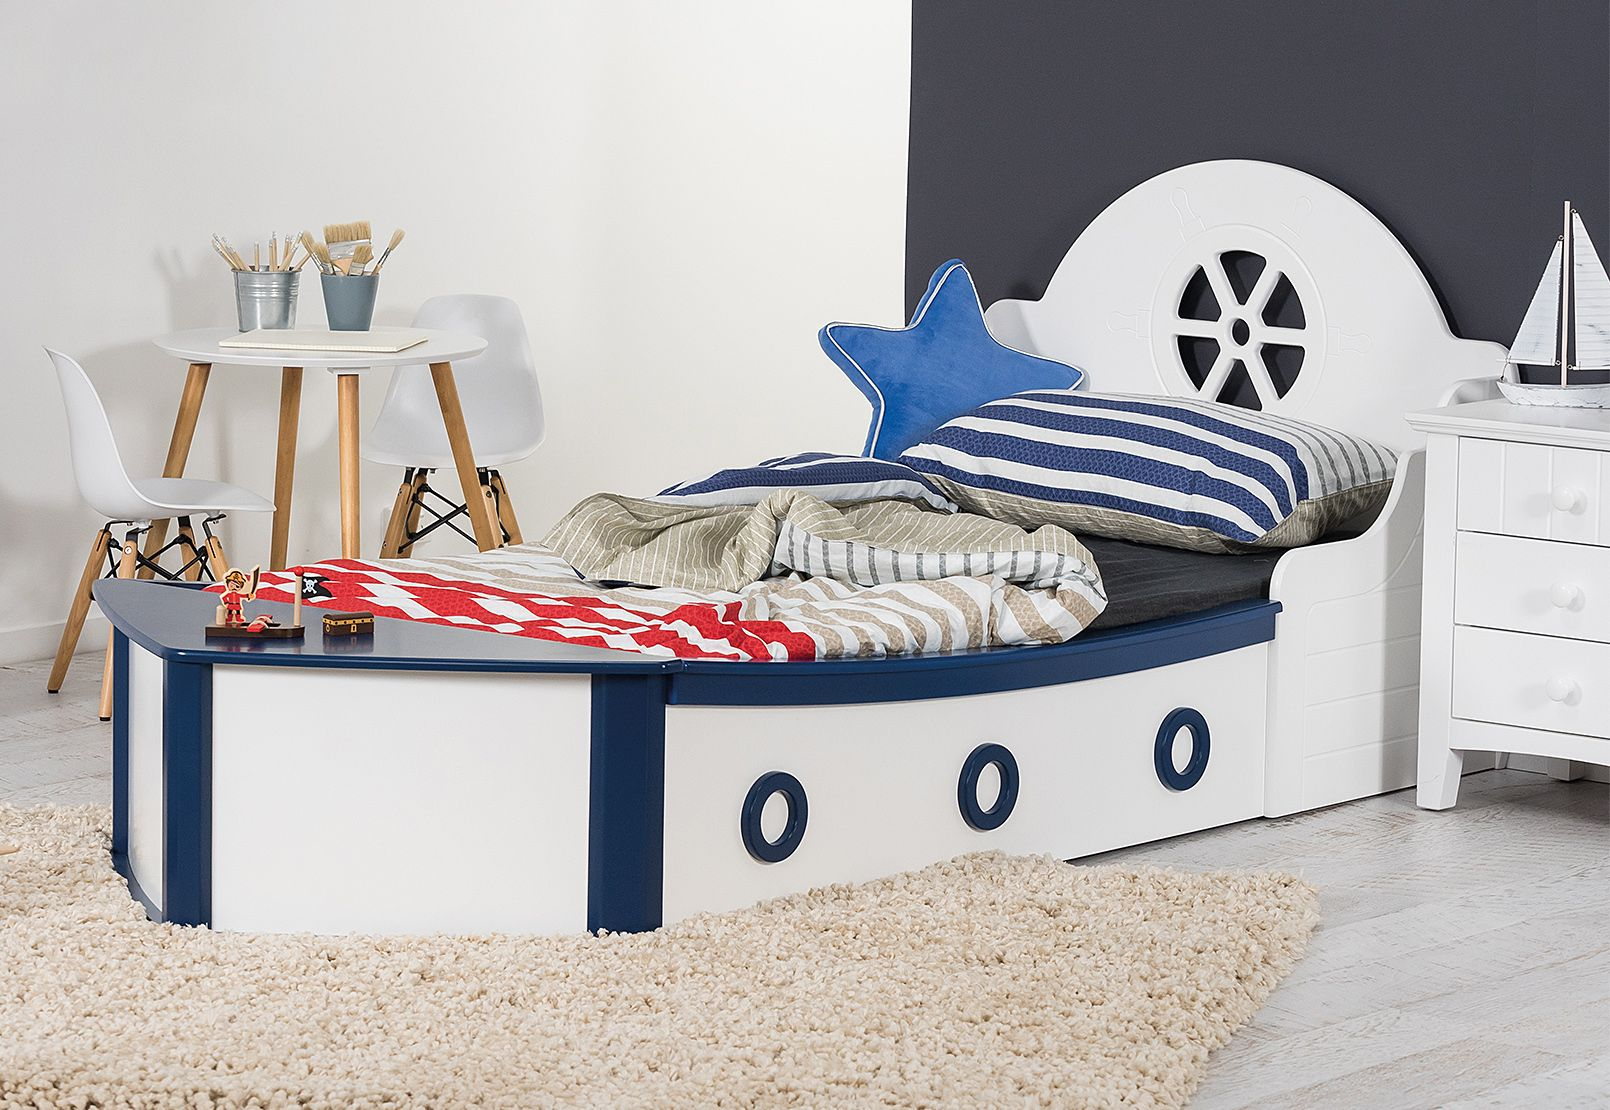 Best Minnow Single Boat Bed Amart Furniture Home Of Kids Pinterest Boat Beds And Bedrooms 400 x 300